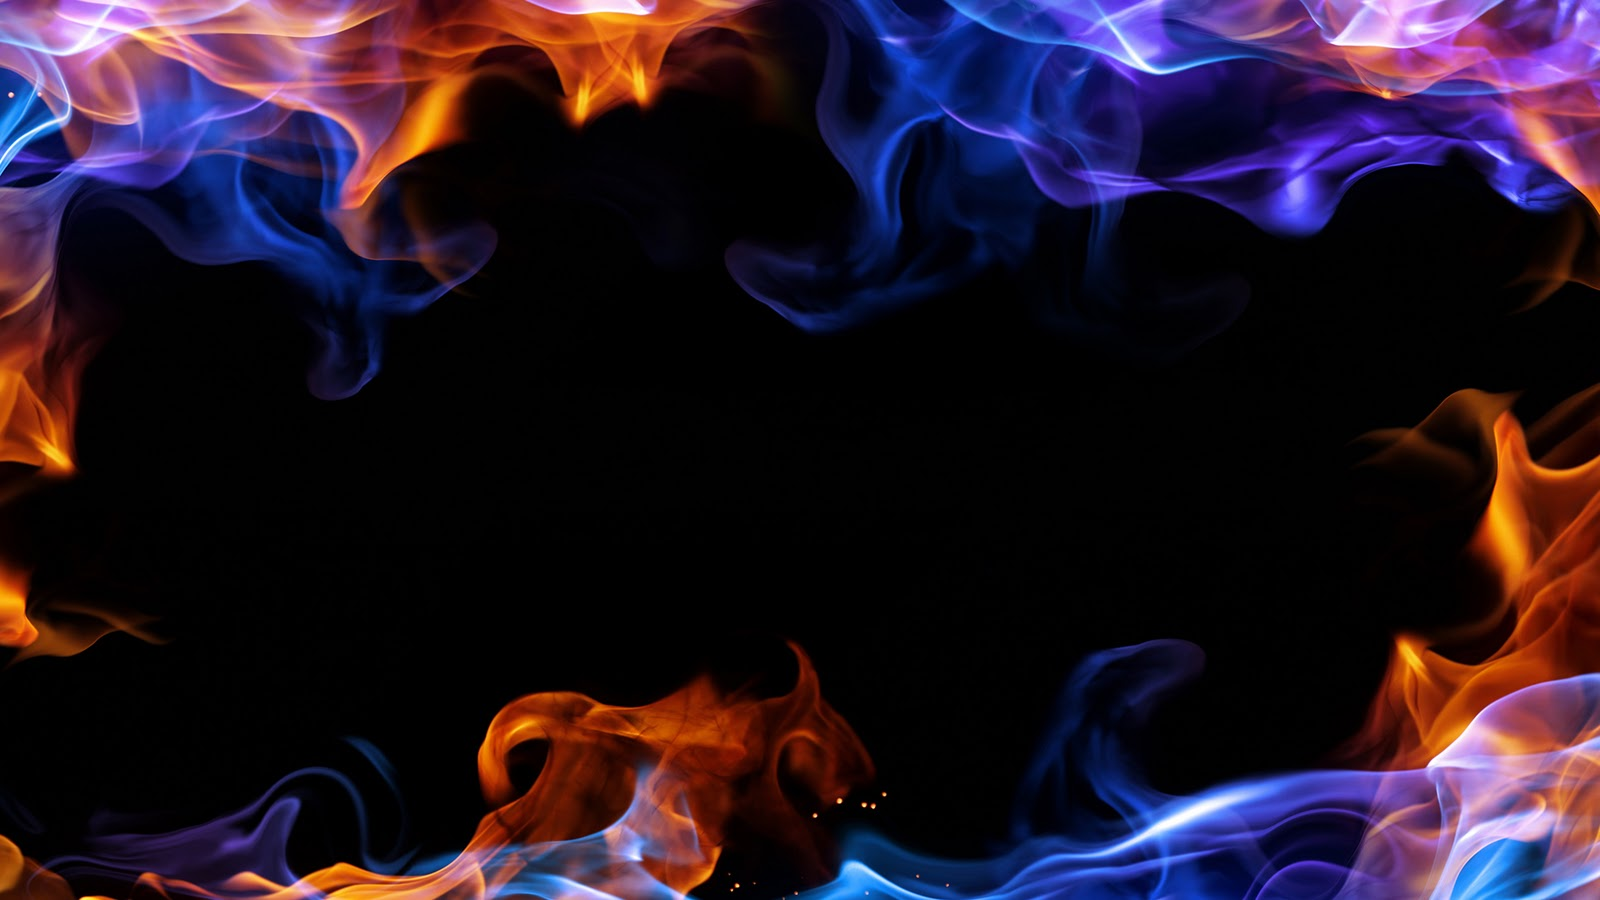 Cool Fire Wallpapers HD Android Apps On Google Play 1600x900